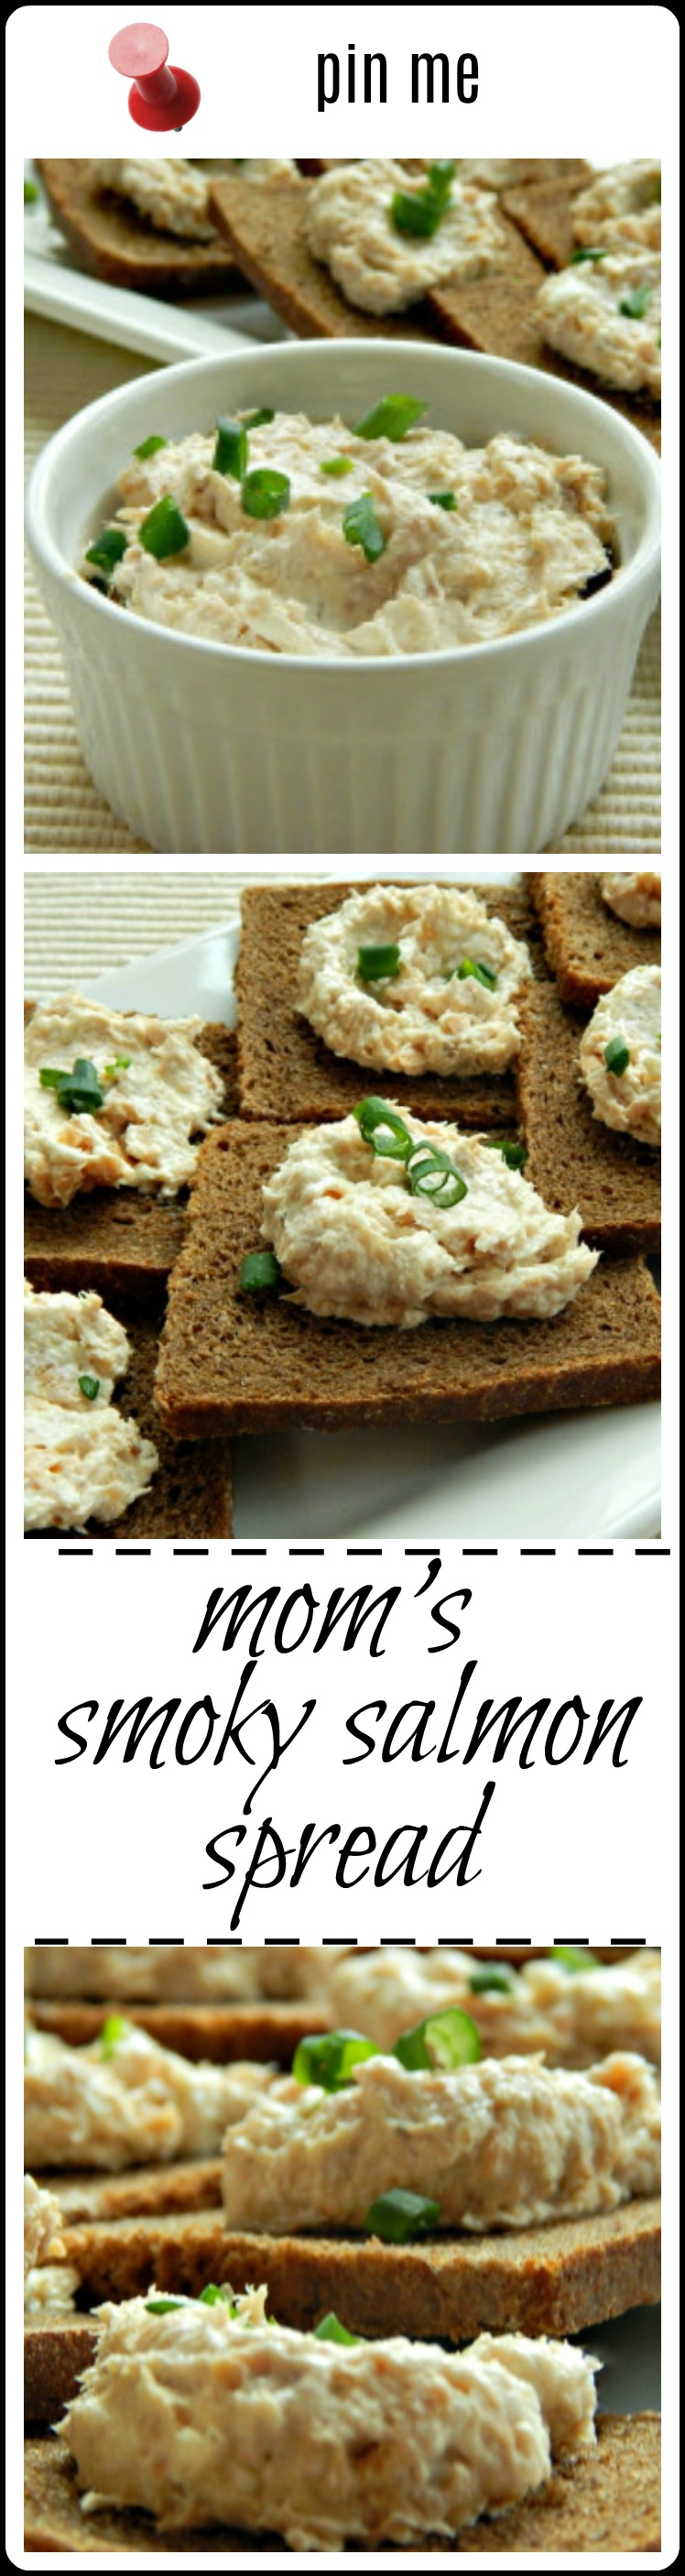 Mom's Smoky Salmon Spread - made with freshly cooked or smoked salmon, or a can of salmon - choose your price range - this is a classic!